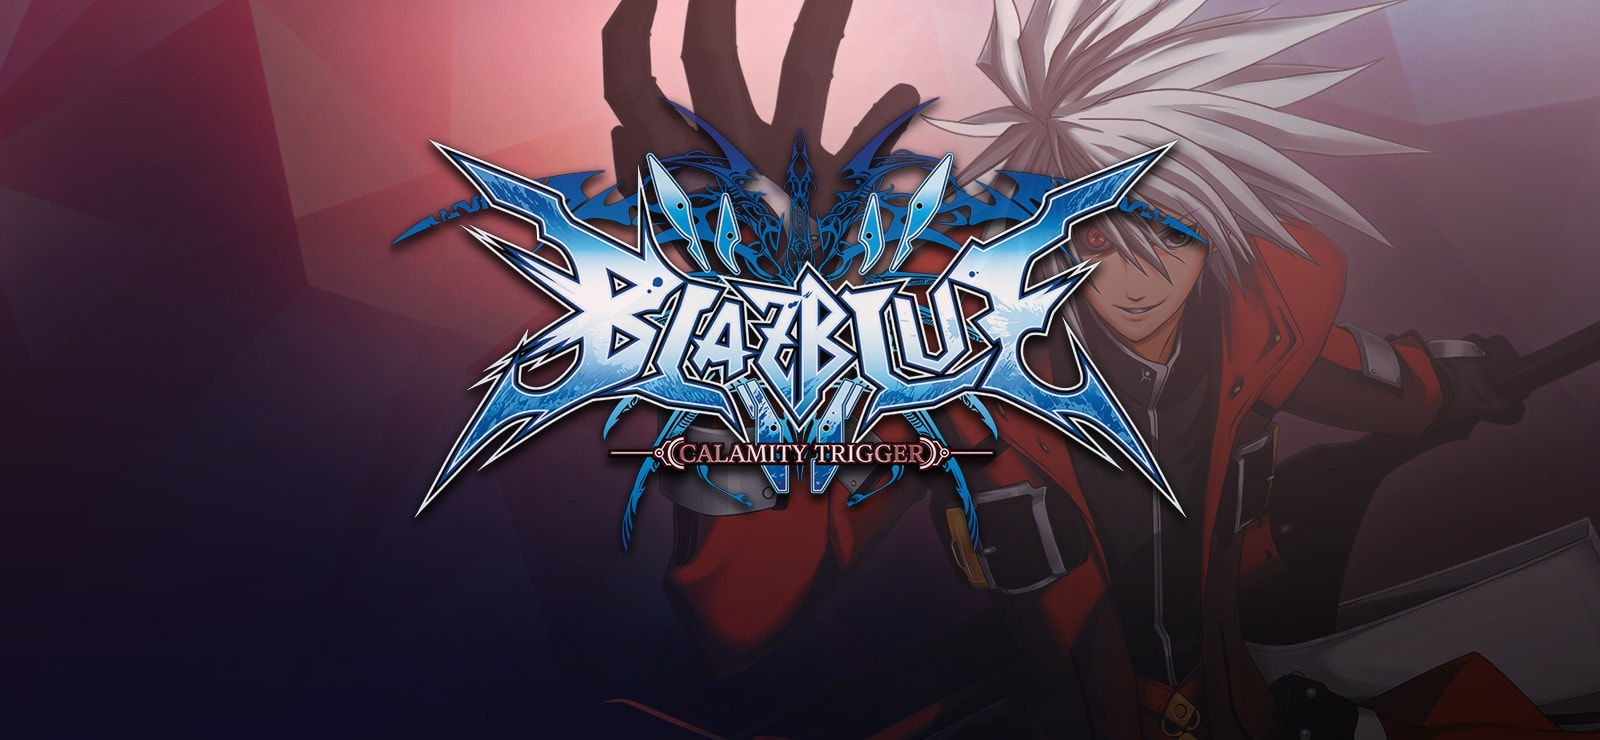 Blazblue Calamity Trigger varies-with-device